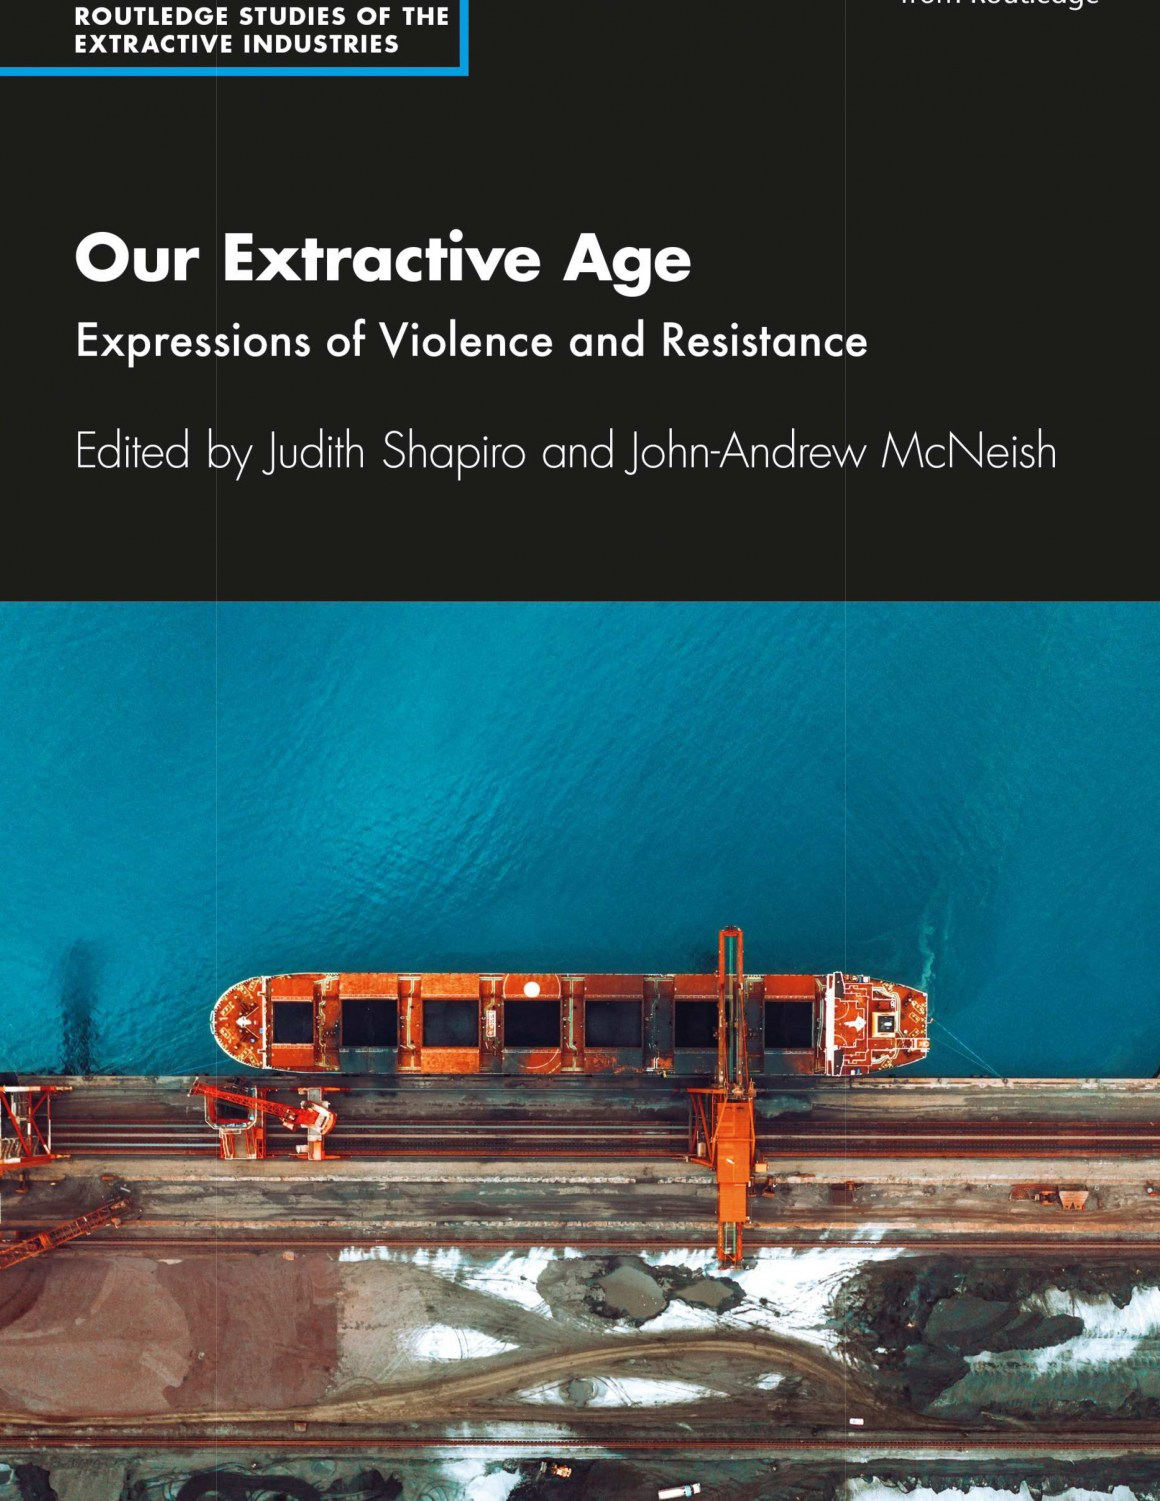 Our Extractive Age: Expressions of Violence and Resistance